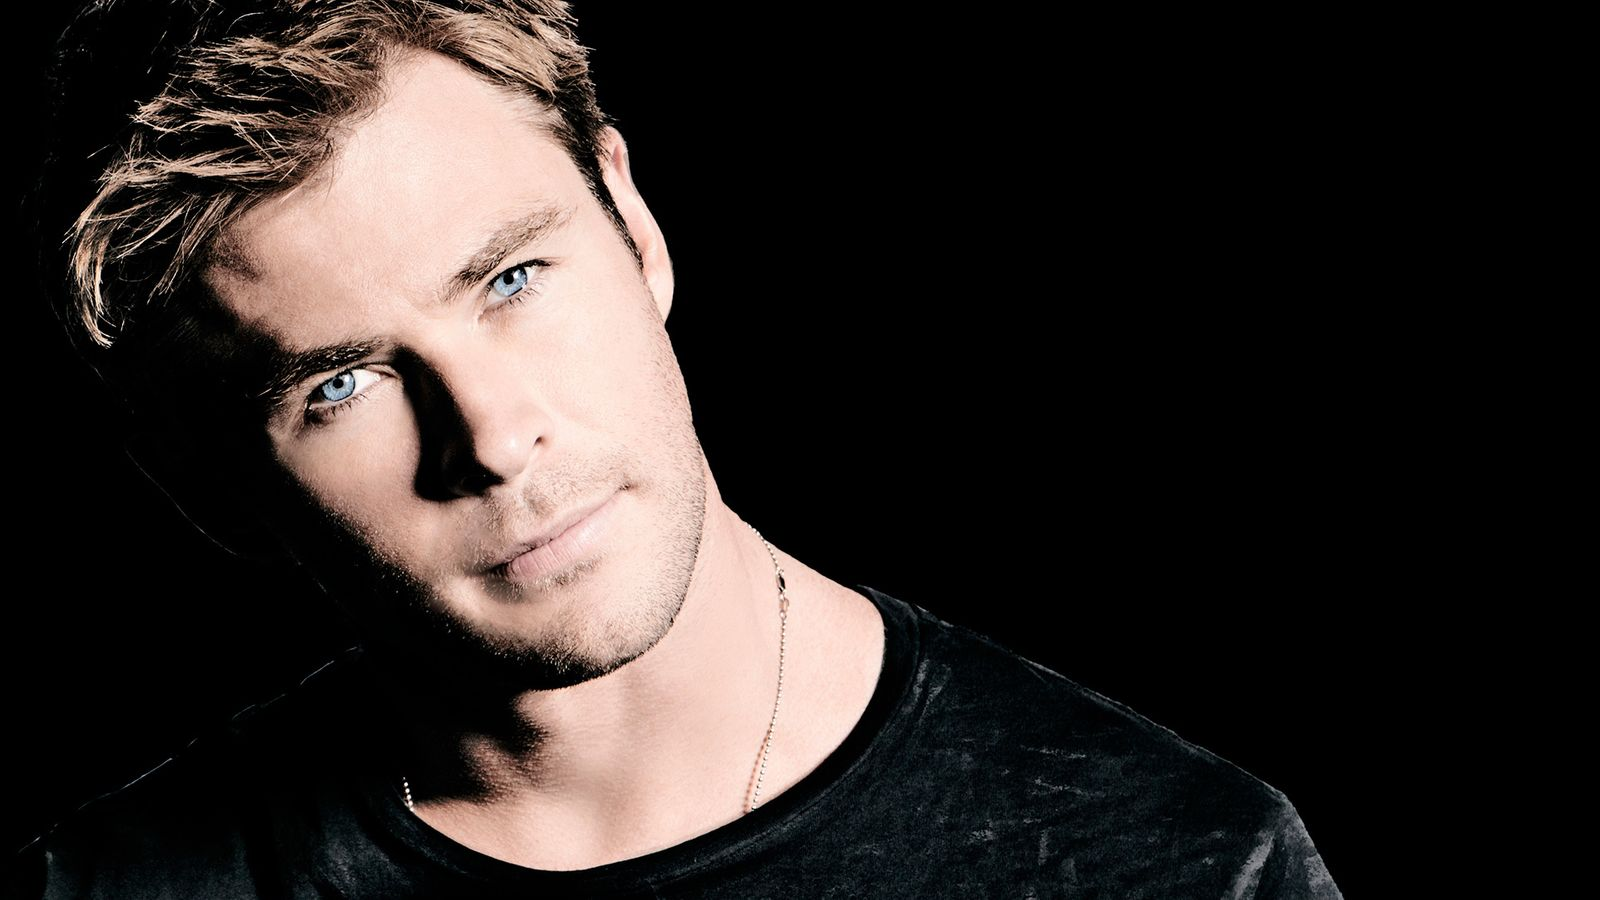 Chris Hemsworth Wallpapers 36 images   Wallpaper Stream 1600x900